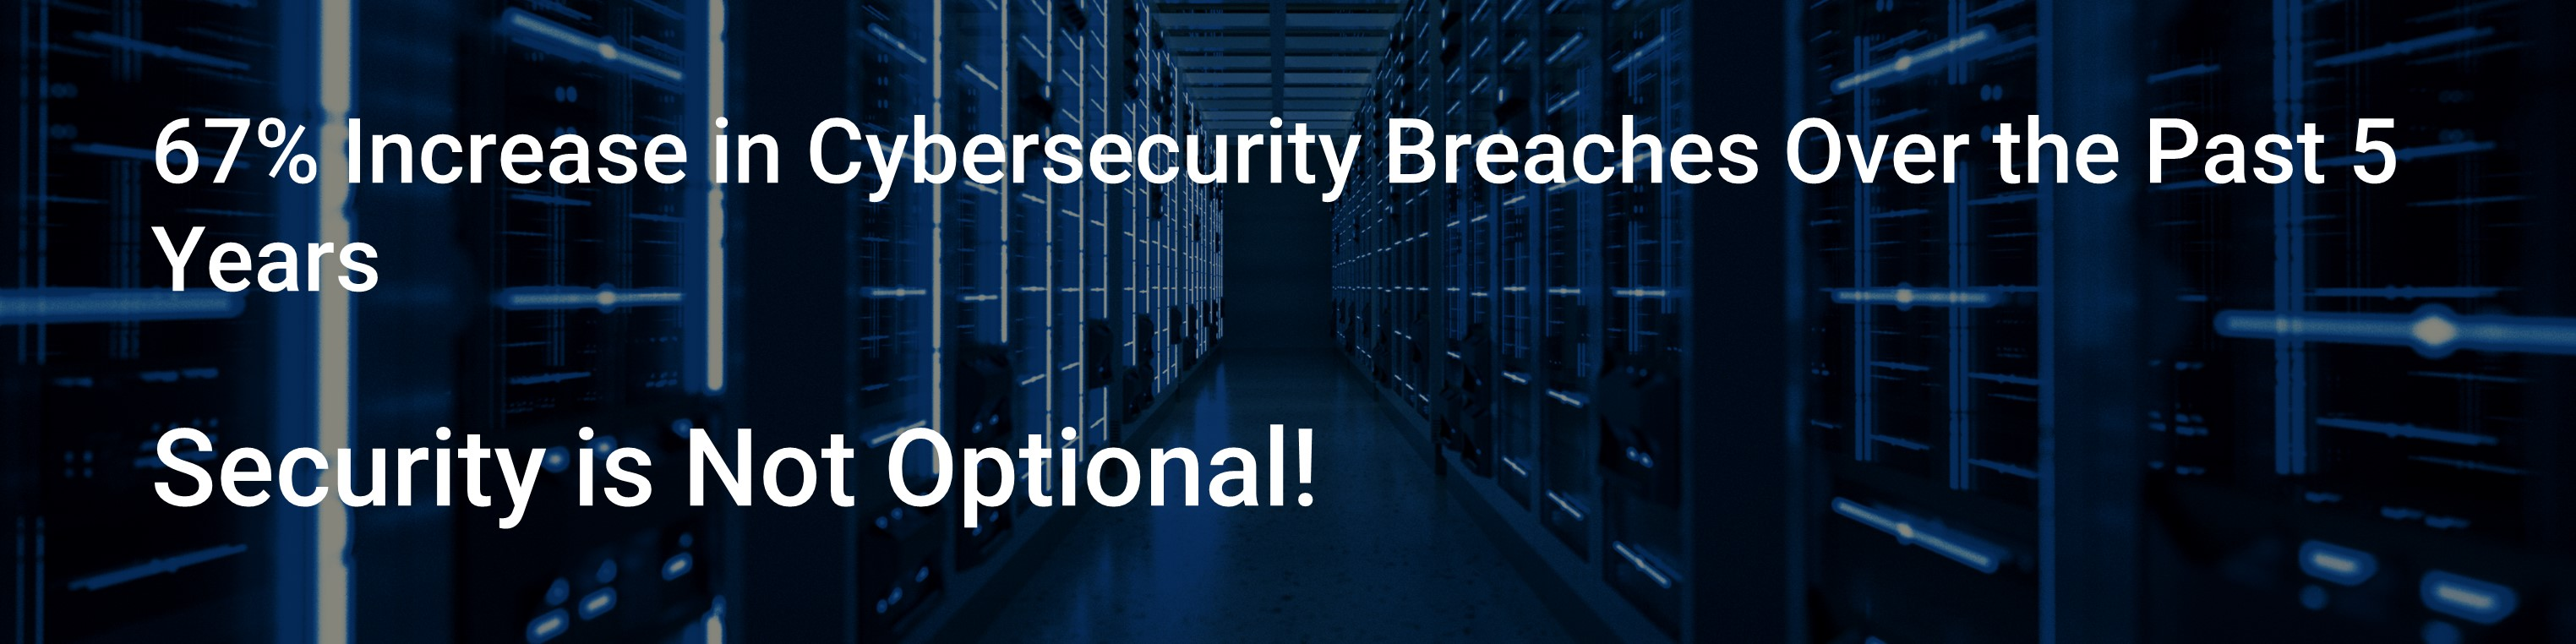 Importance of Video Security